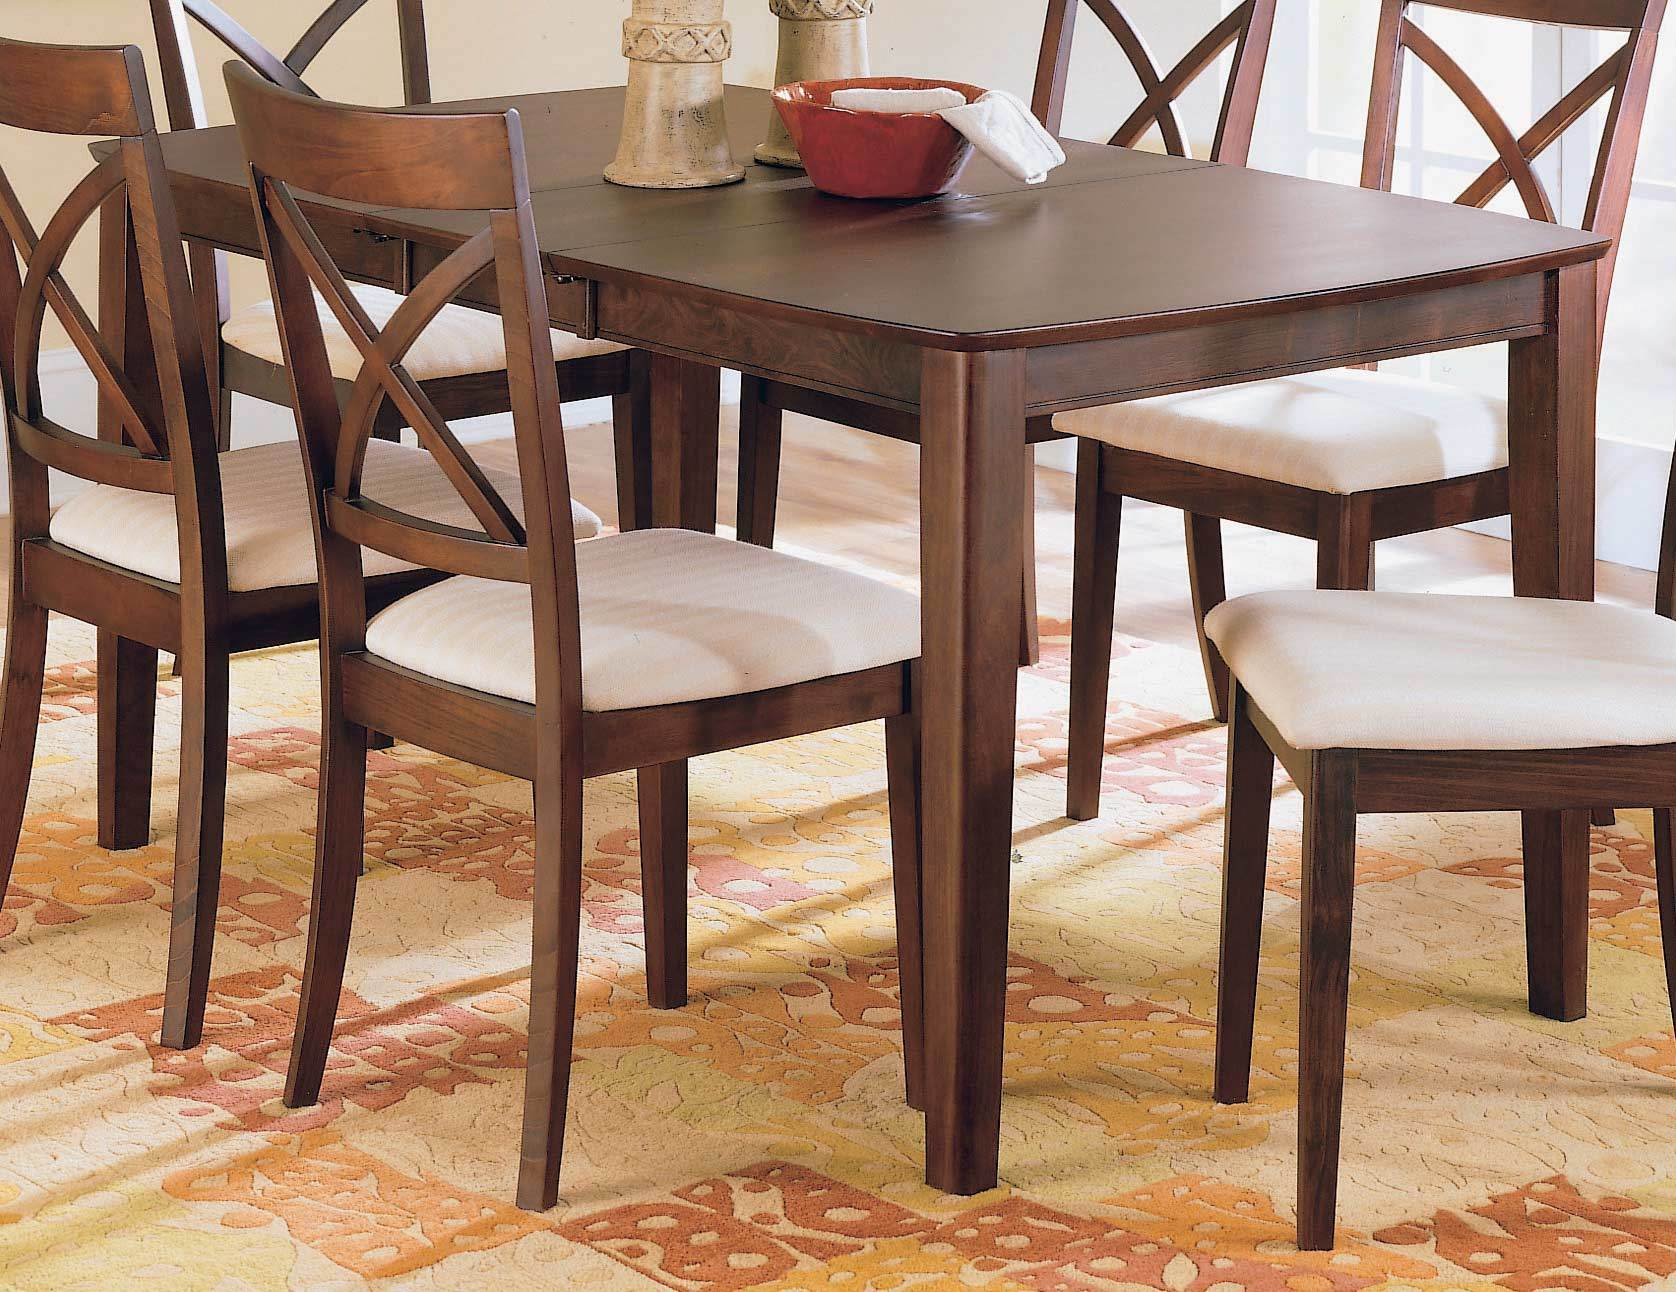 Dining table dining table and chairs thailand for Wooden dining table and chairs